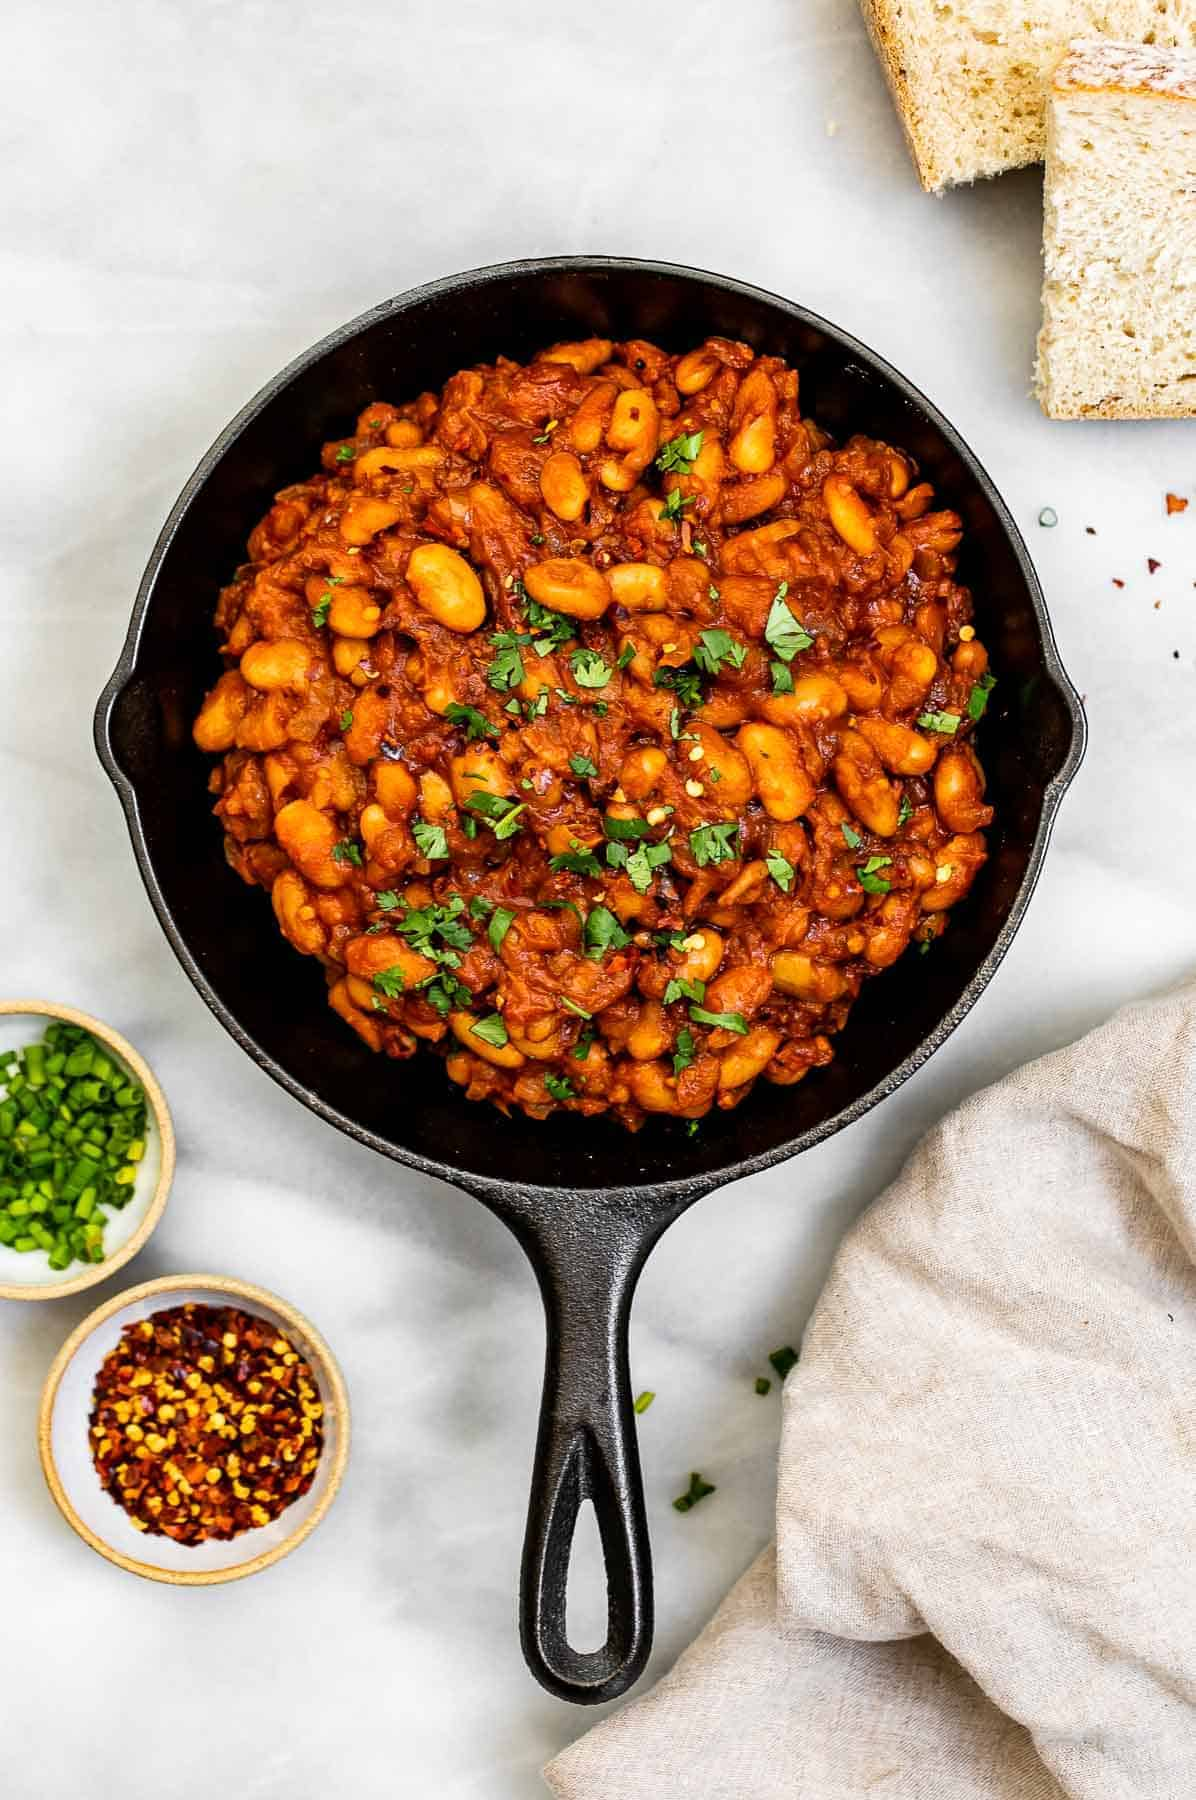 Vegan baked beans in a black pan with bread on the side.